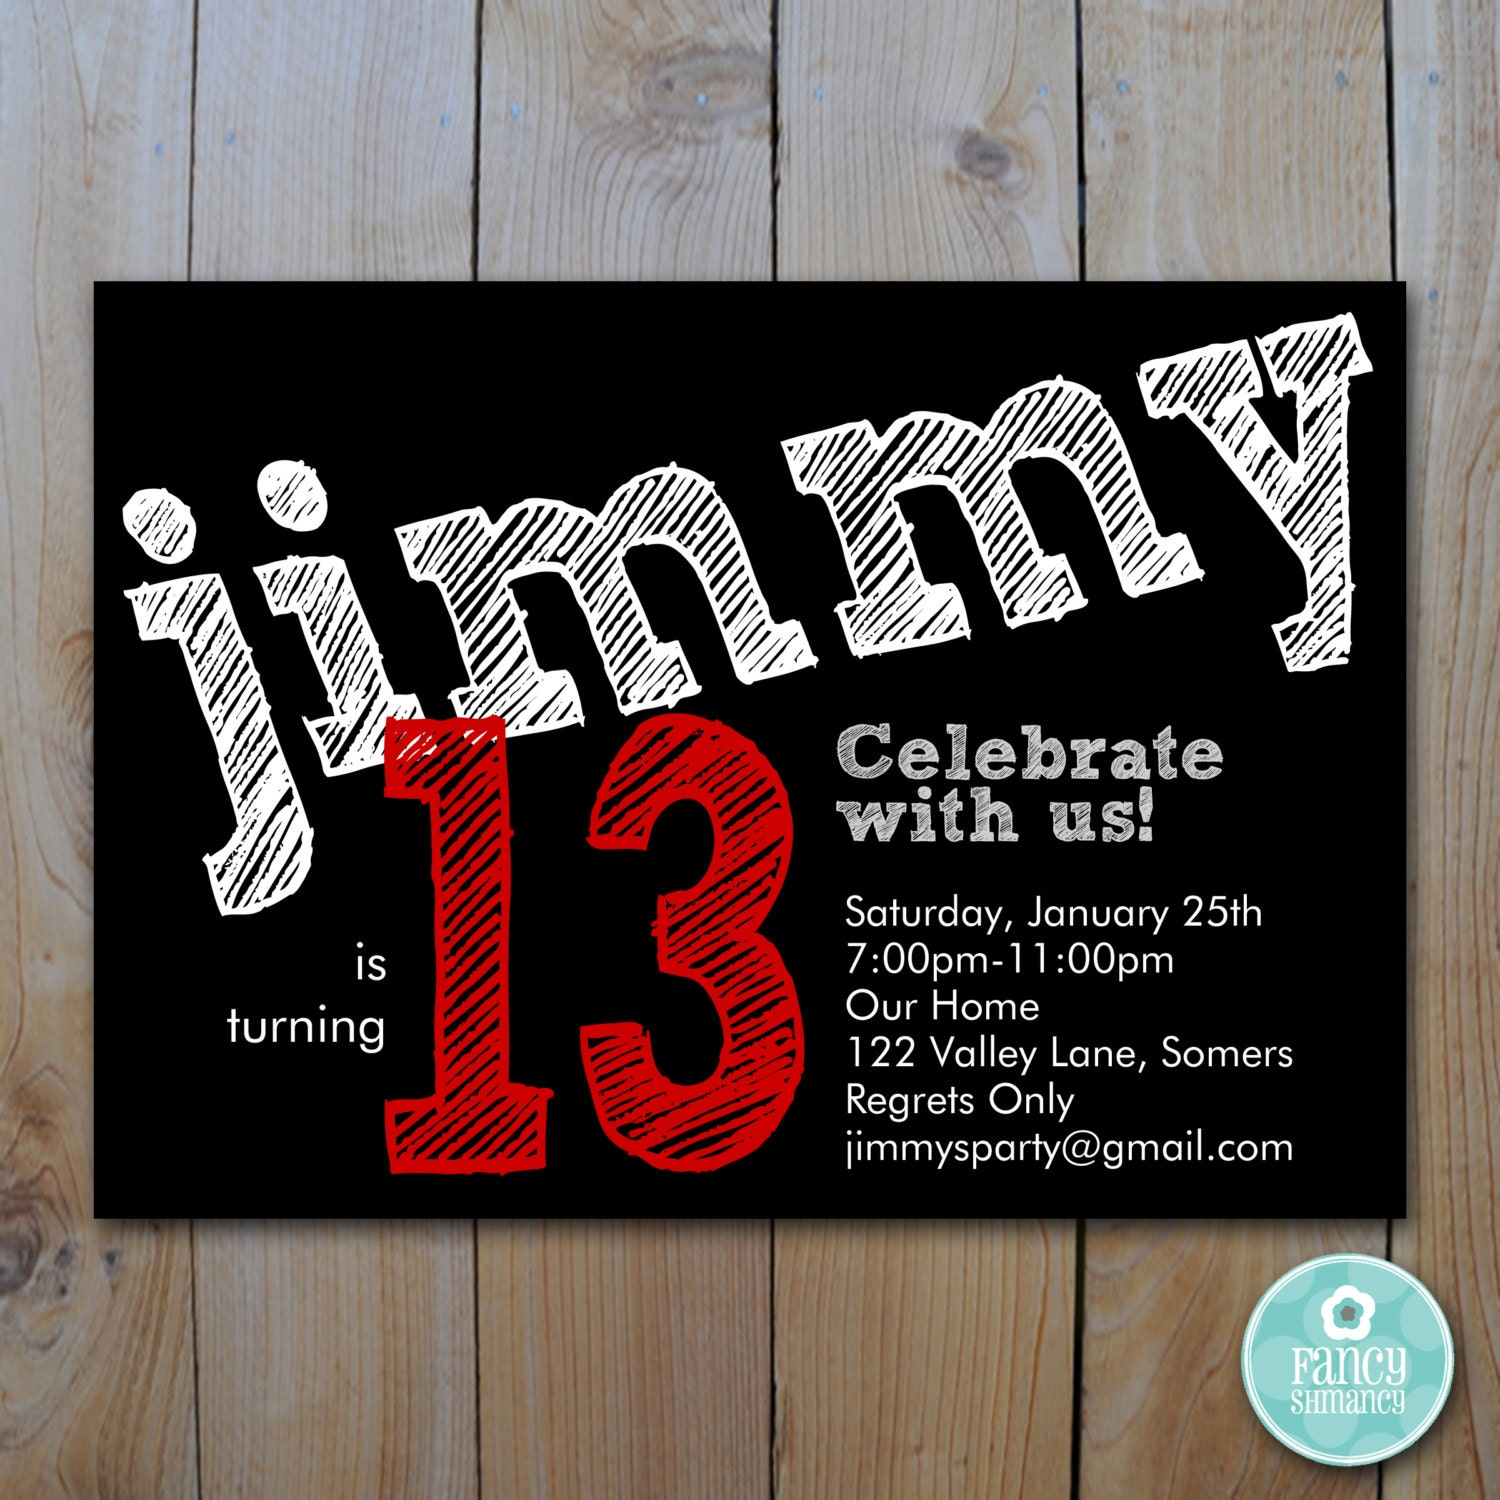 13 birthday invitations Josemulinohouseco